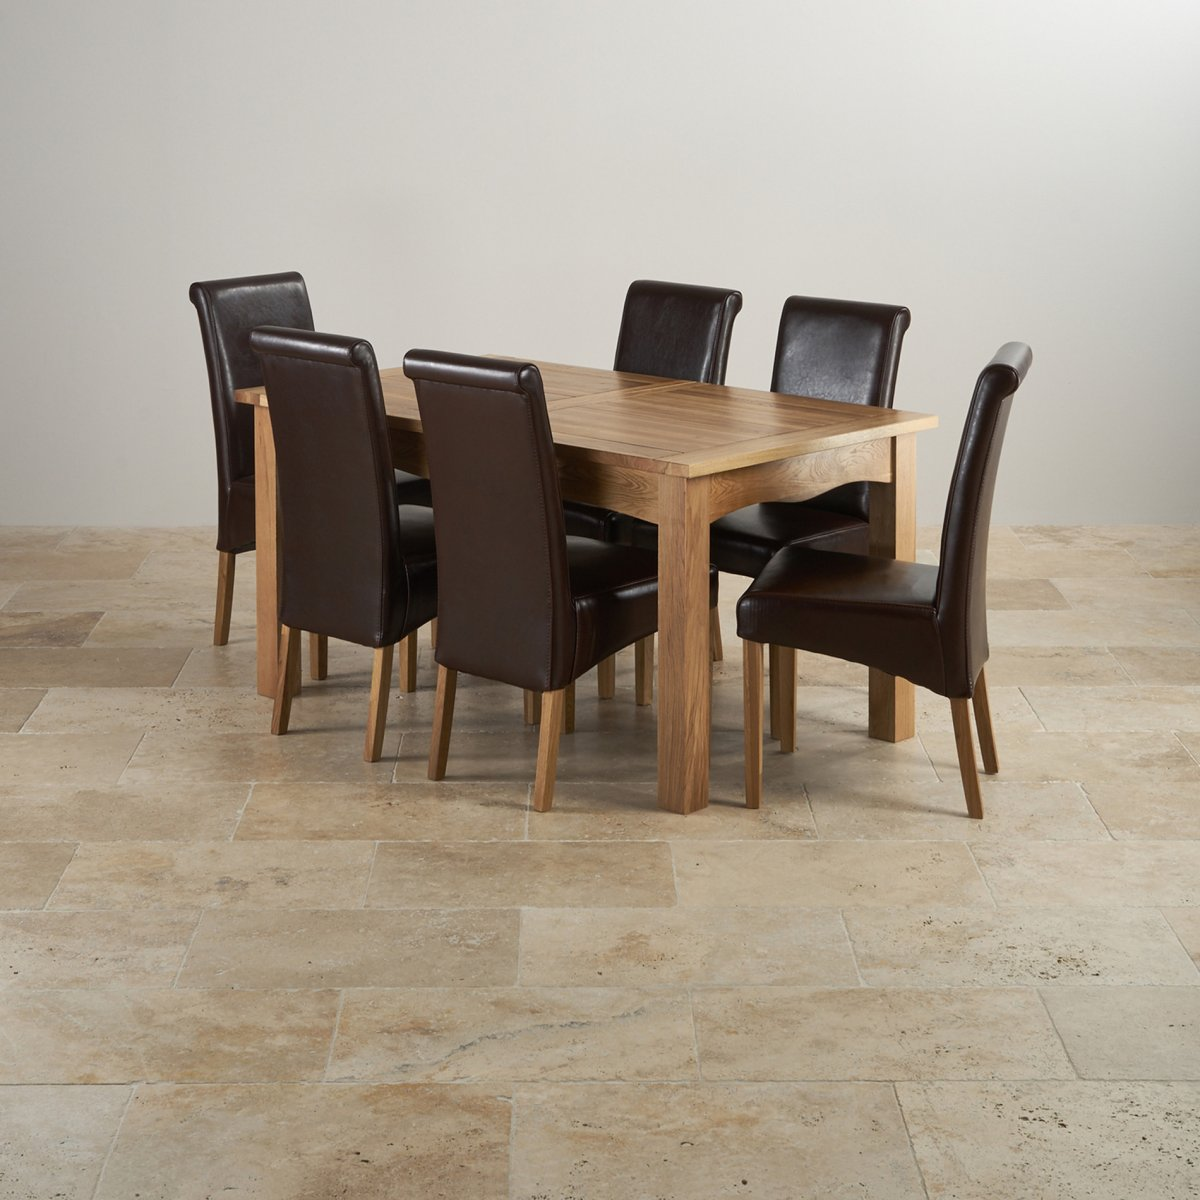 Dining Table With Two Chairs: Cairo Extending Dining Set In Oak: Table + 6 Leather Chairs